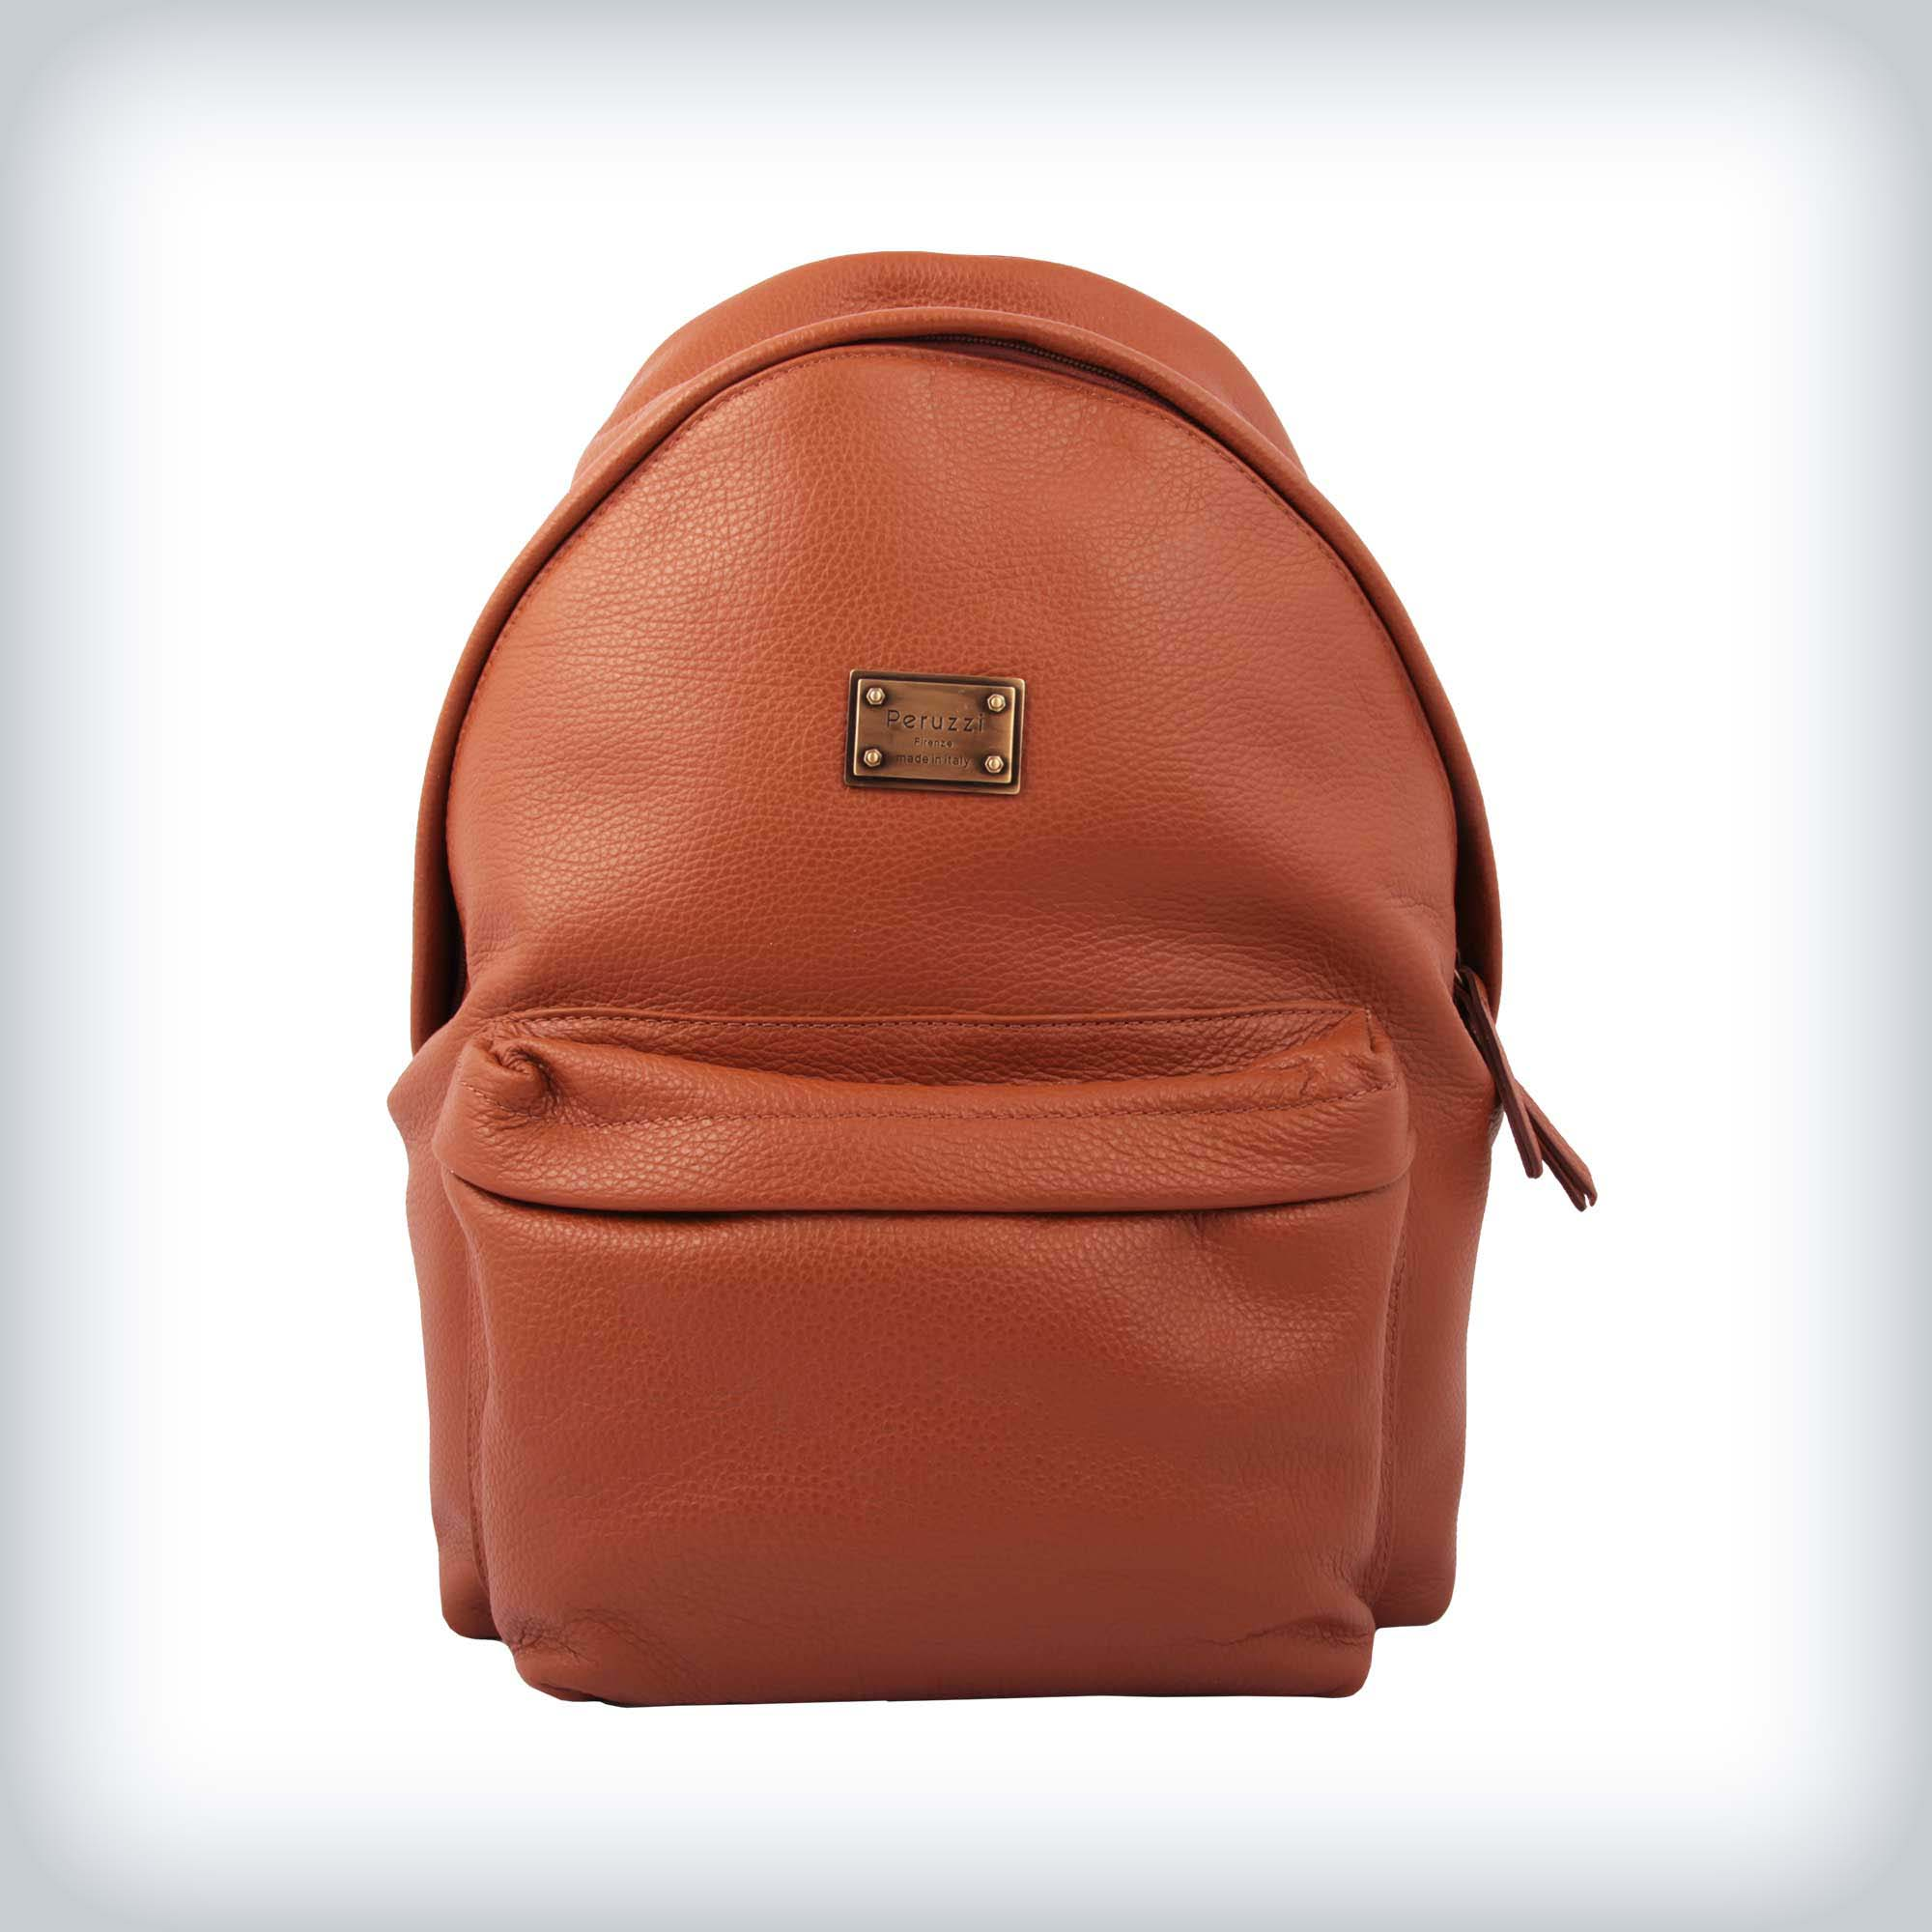 f42b8ec1f111f ... Leather Backpack Peruzzi Return to Previous Page. Out. of stock.  lightbox